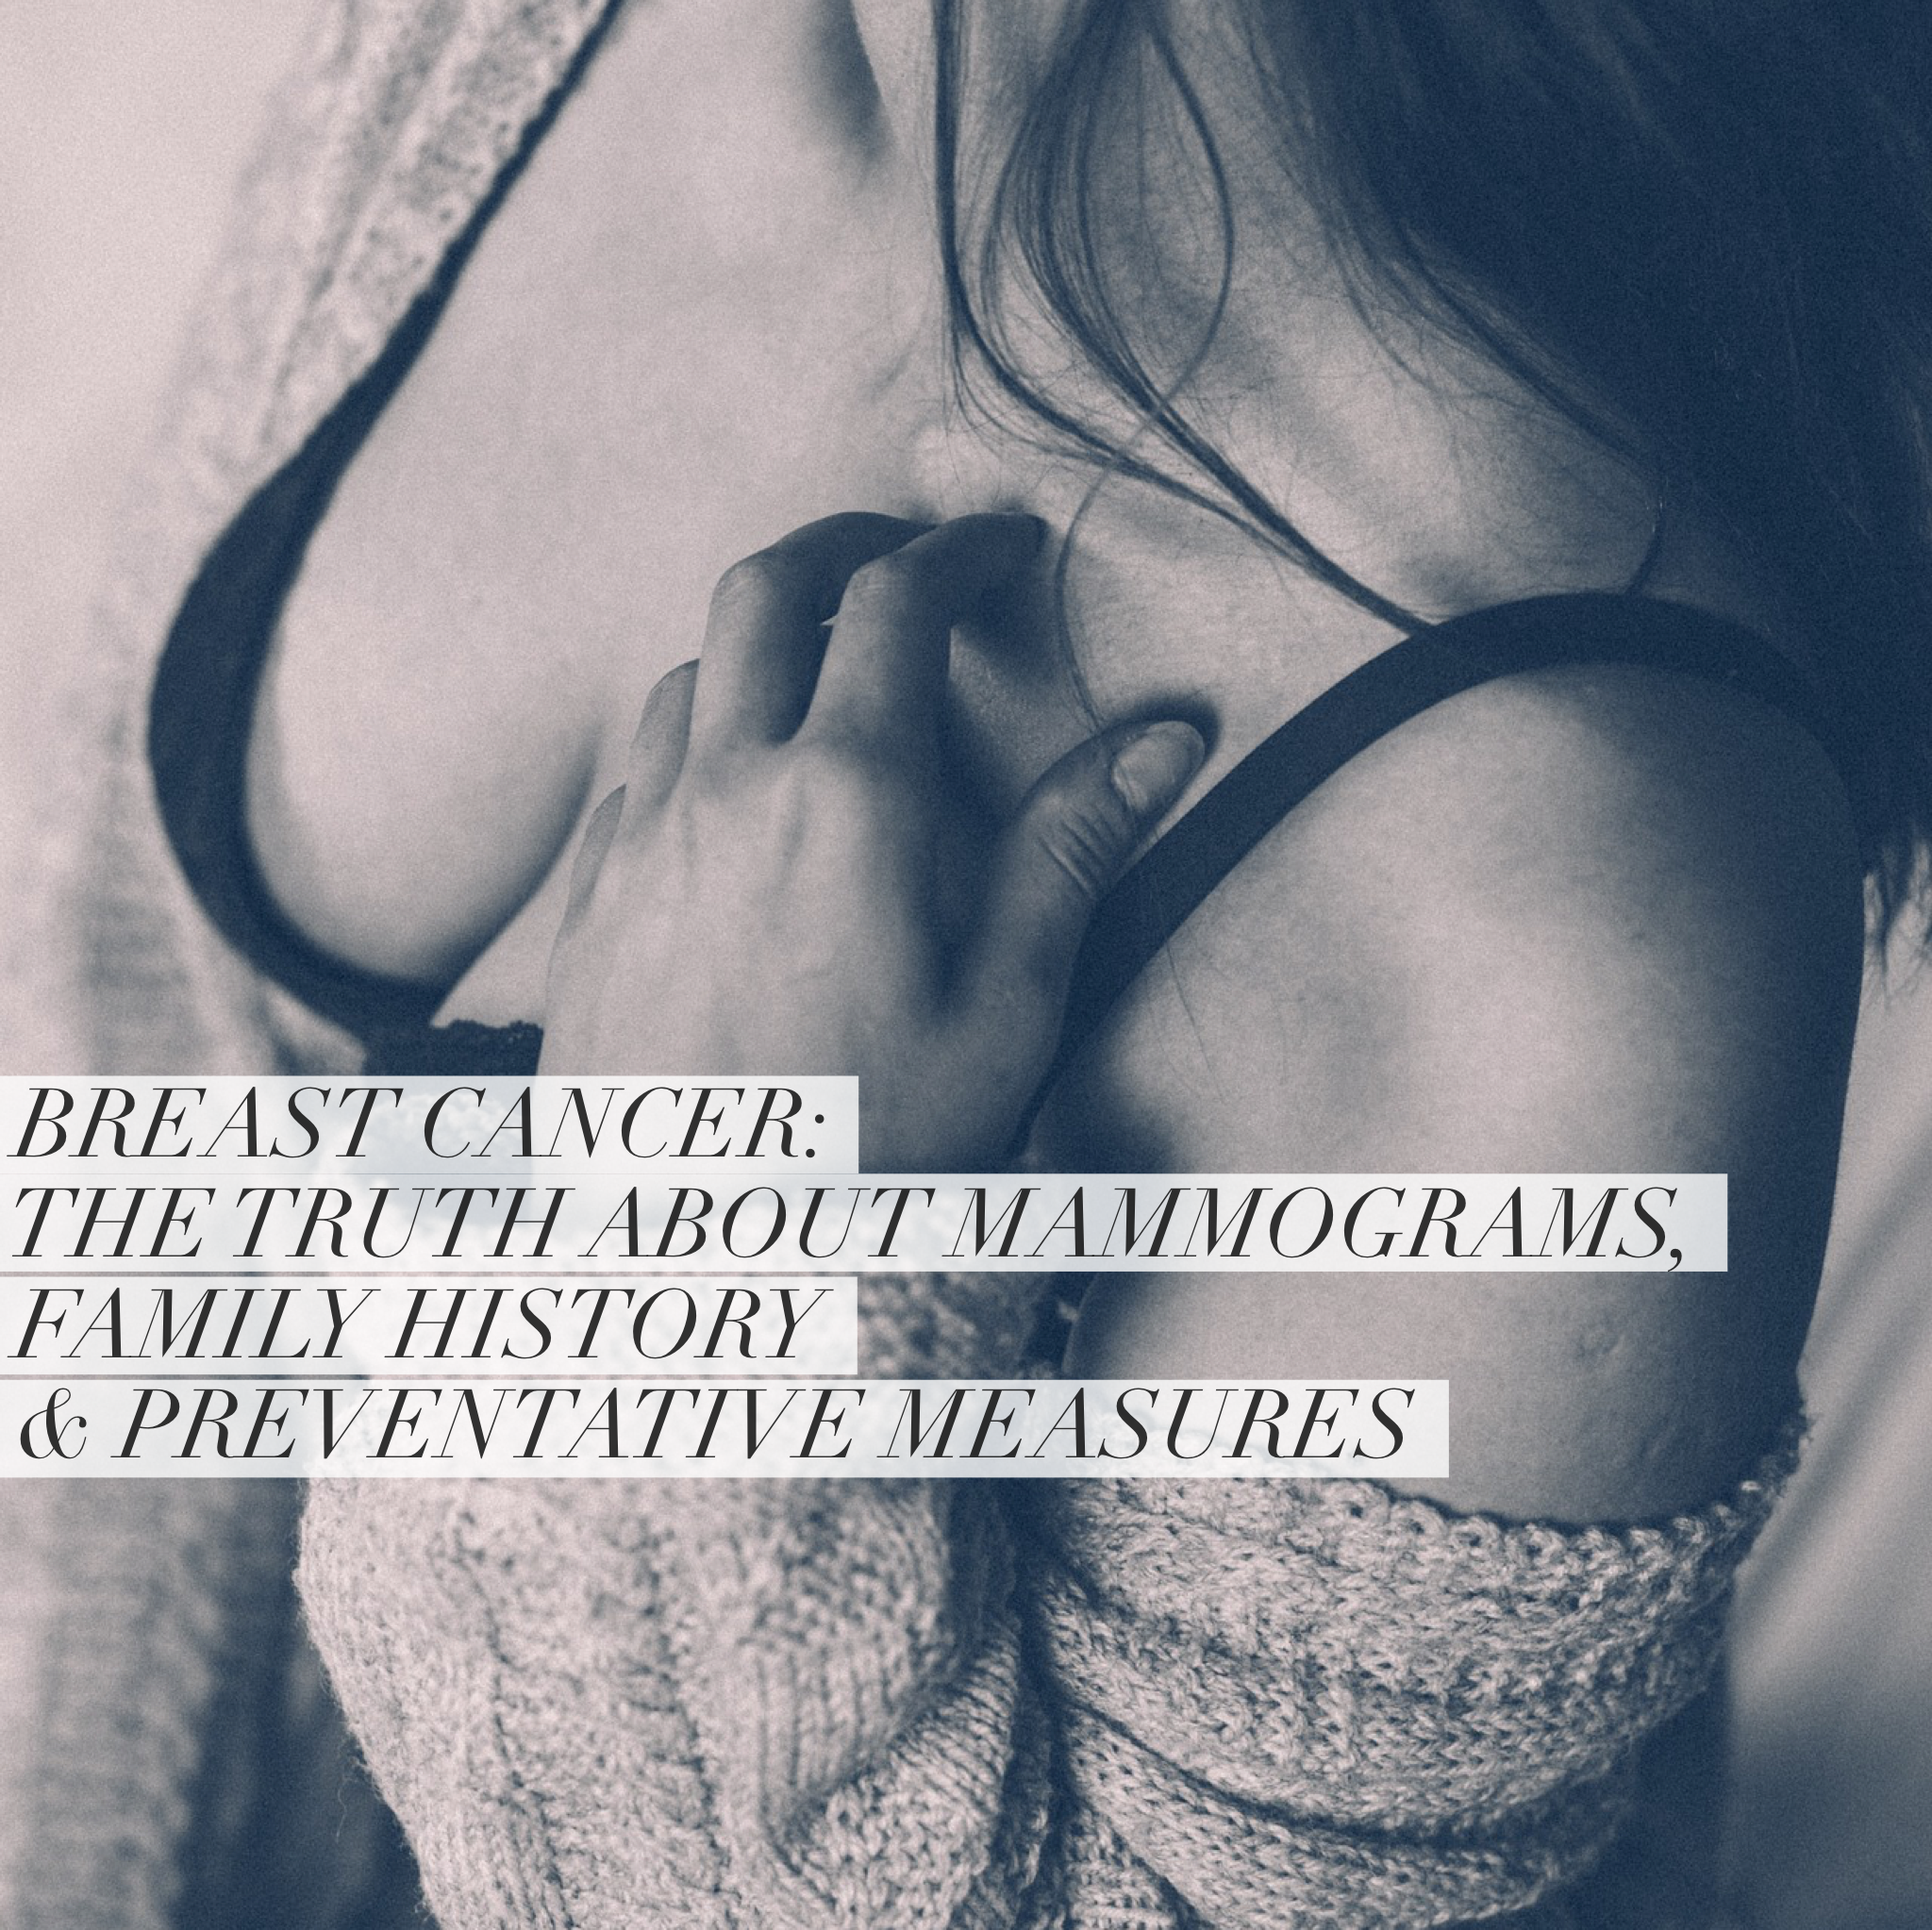 Breast Cancer Awareness: The Truth about Mammograms, Family History and Preventative Measures - janny: organically.